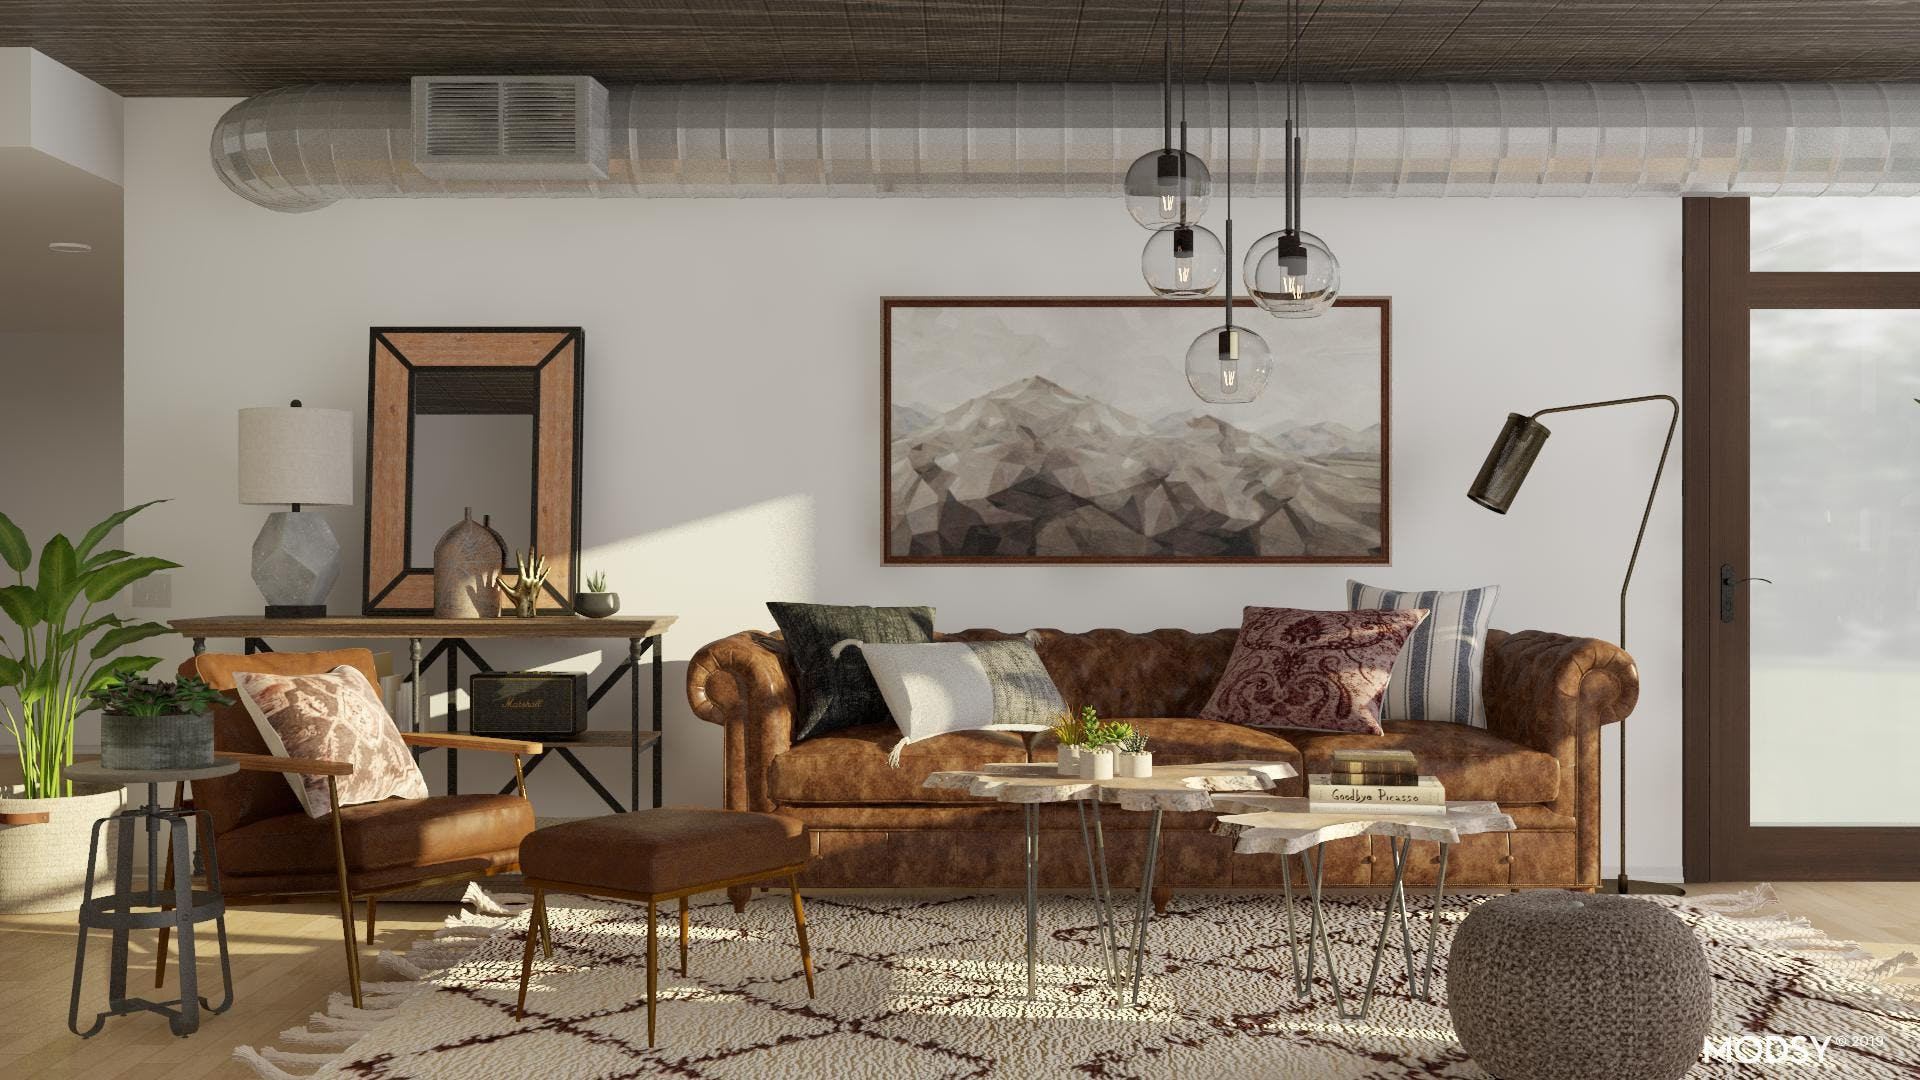 A Masculine, Industrial Living Room